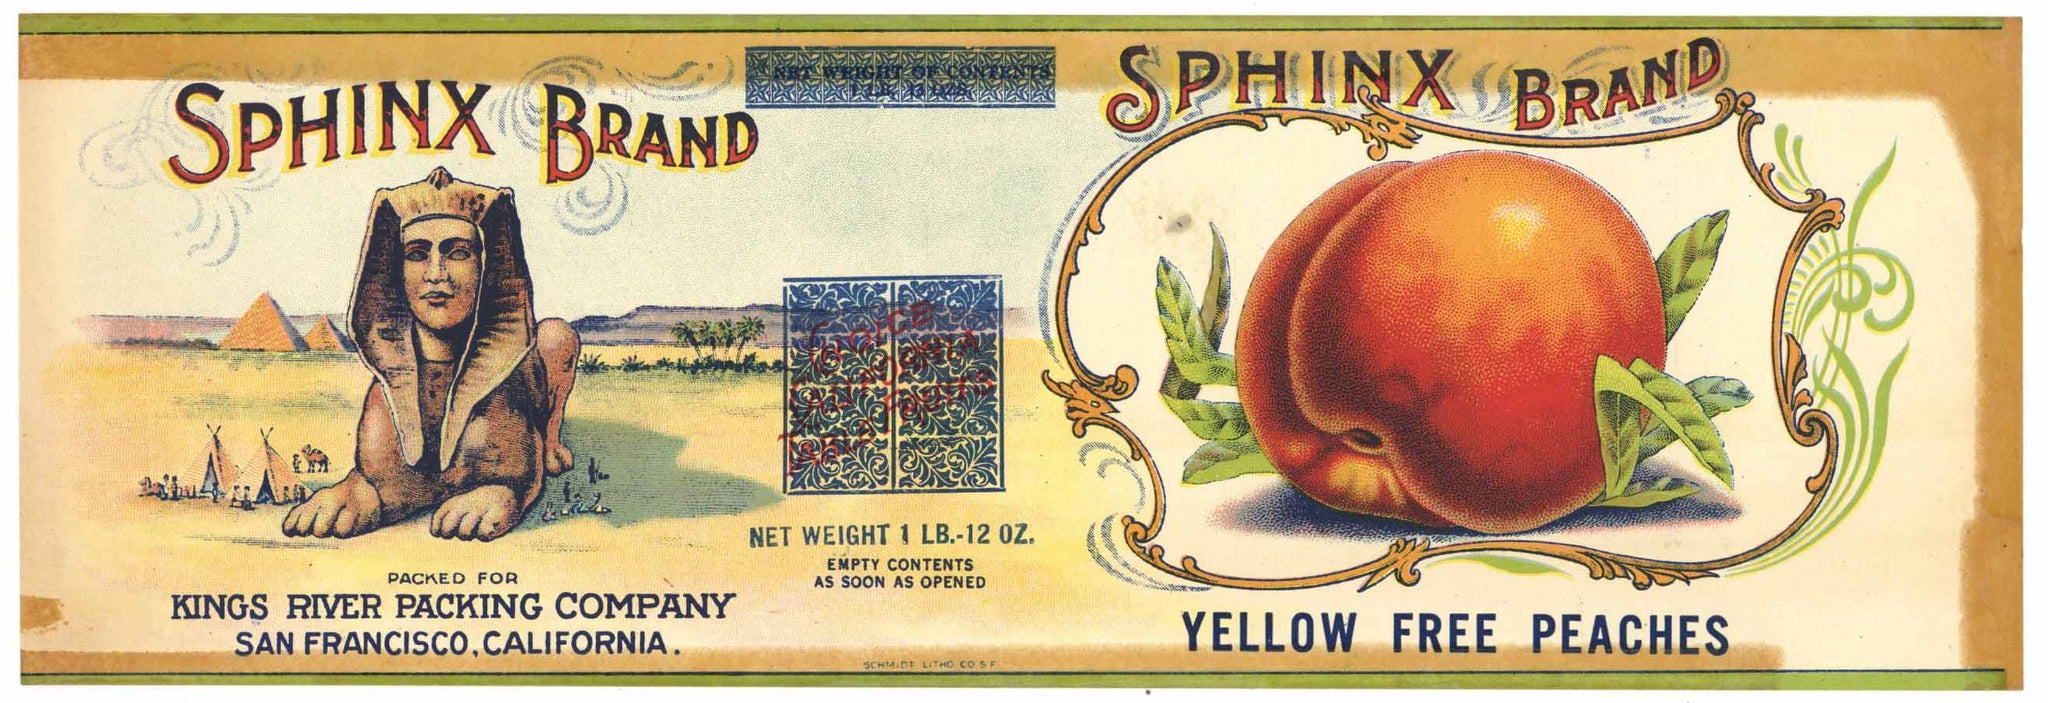 Sphinx Brand Vintage Peach Can Label